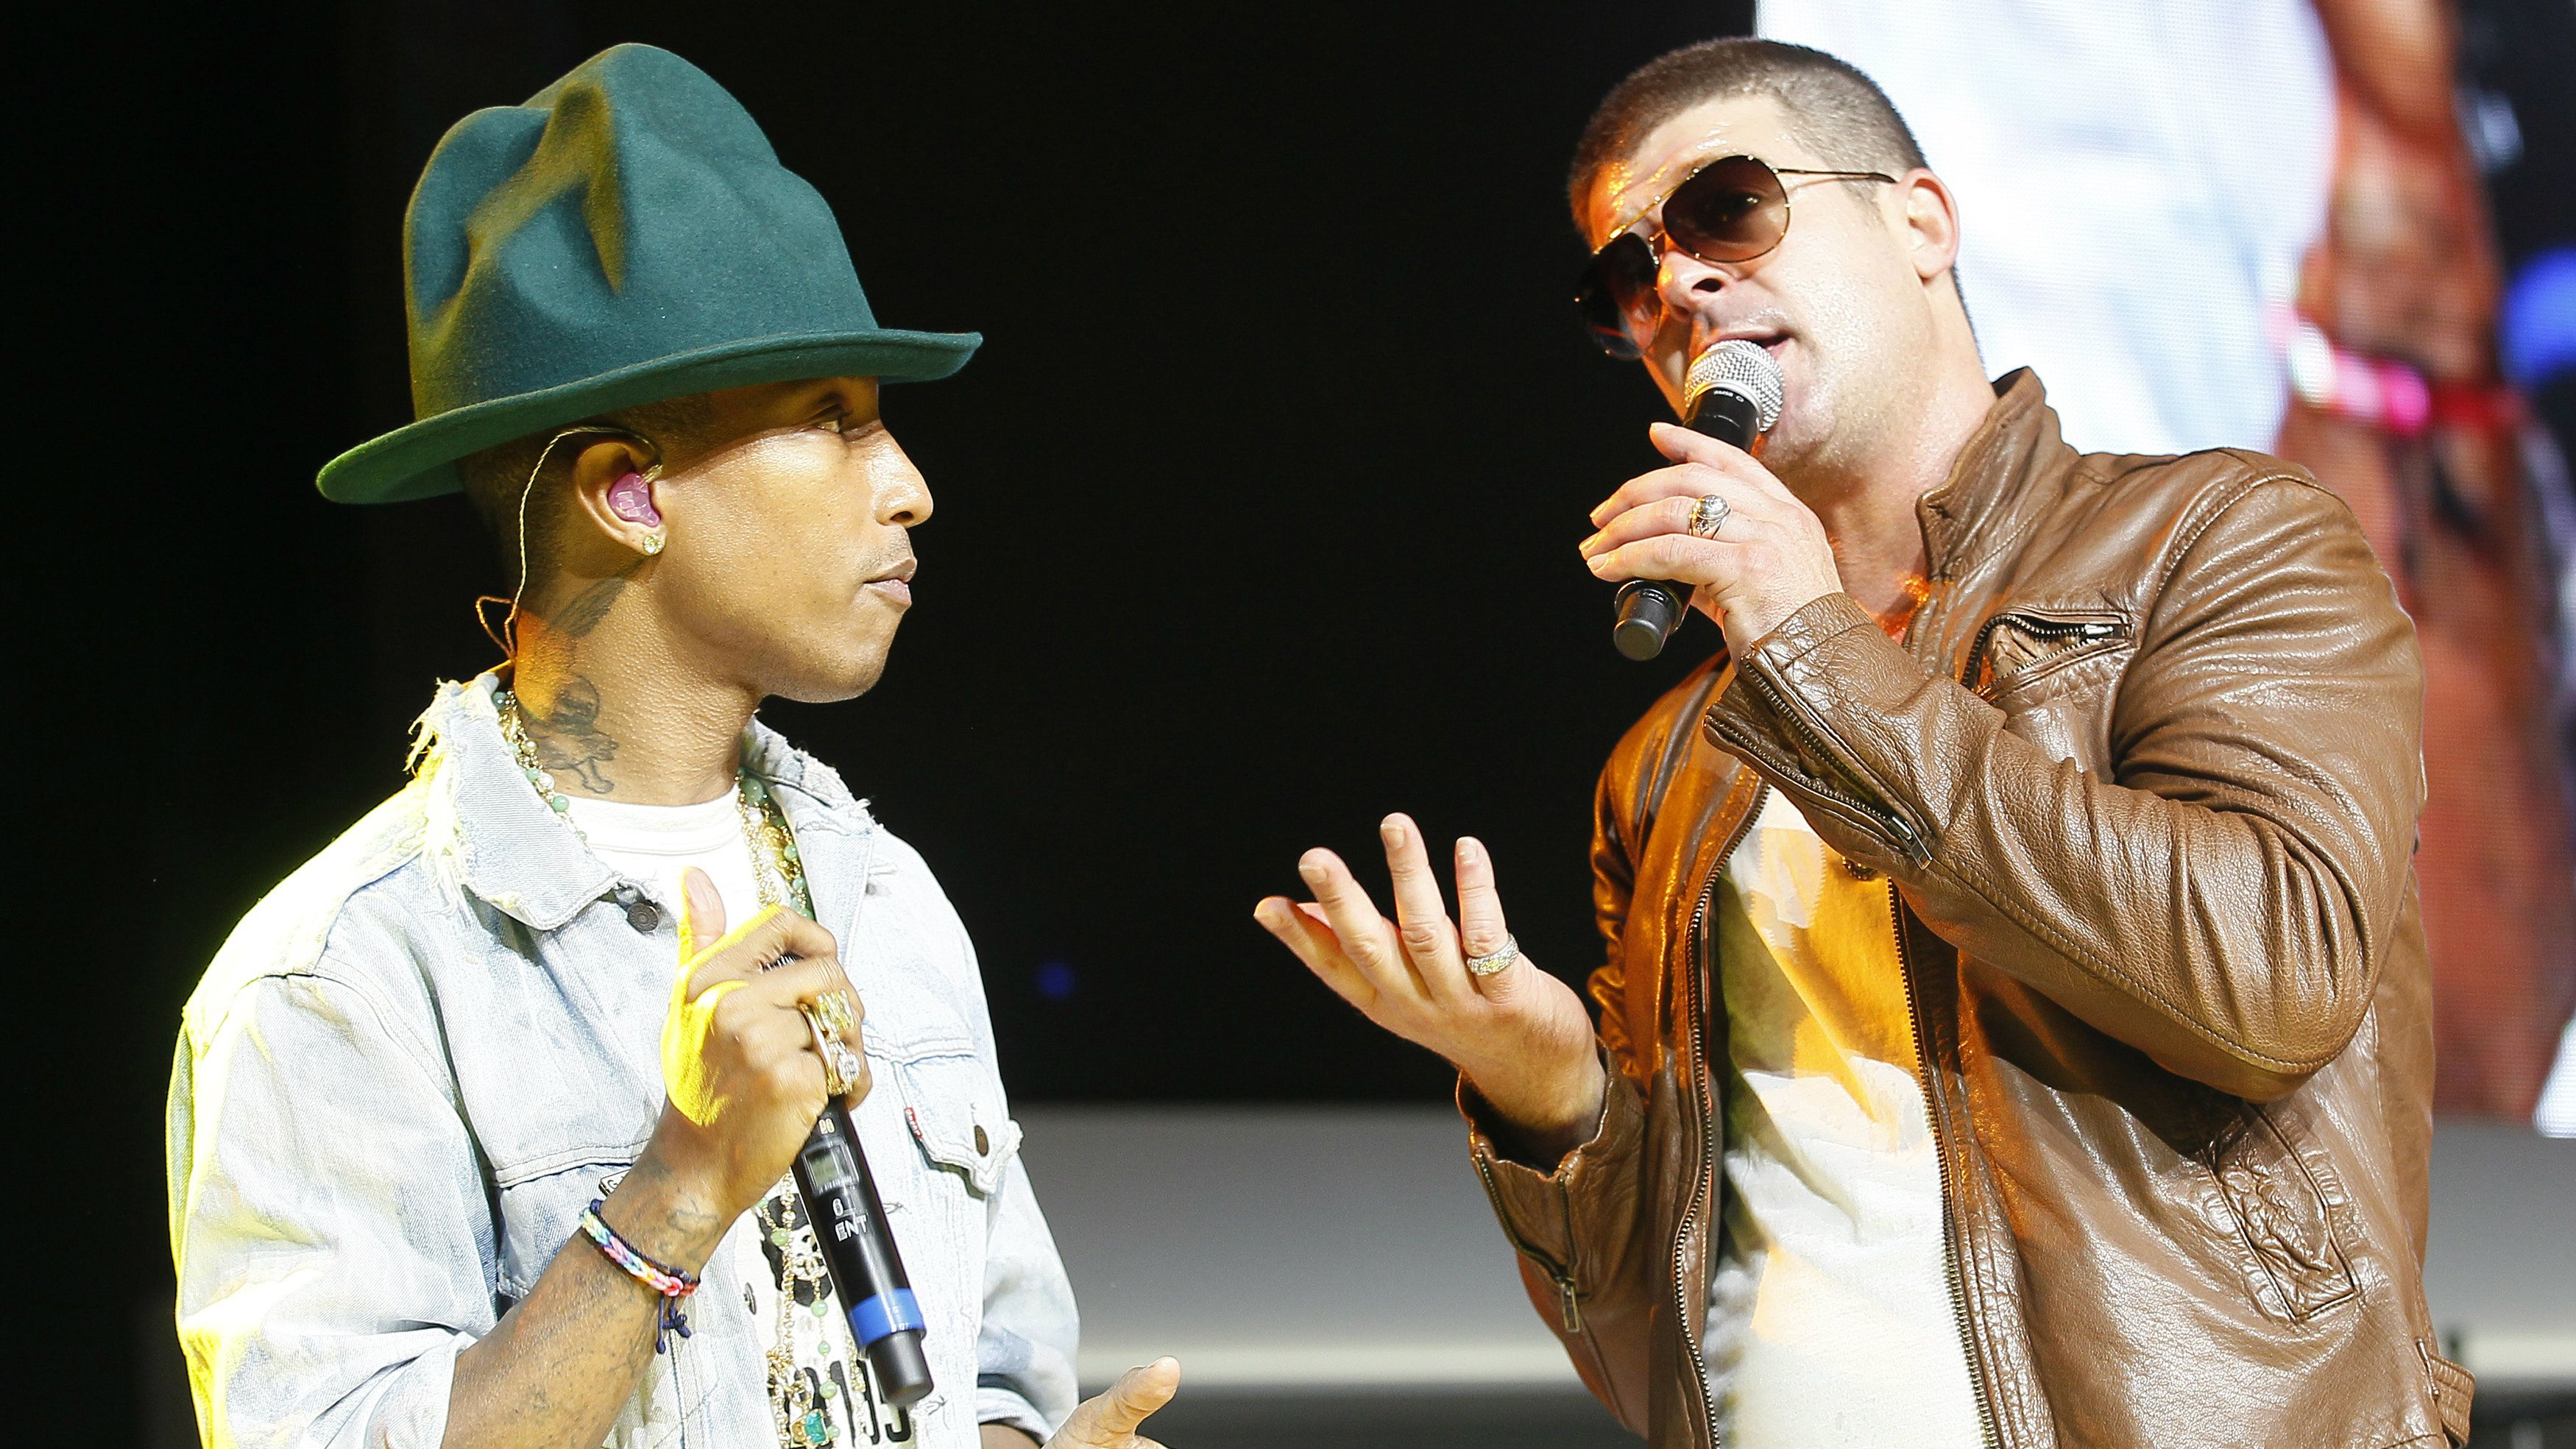 Singer Pharrell Williams (L) and singer Robin Thicke perform together at the Walmart annual shareholders meeting in Fayetteville, Arkansas June 6, 2014. REUTERS/Rick Wilking